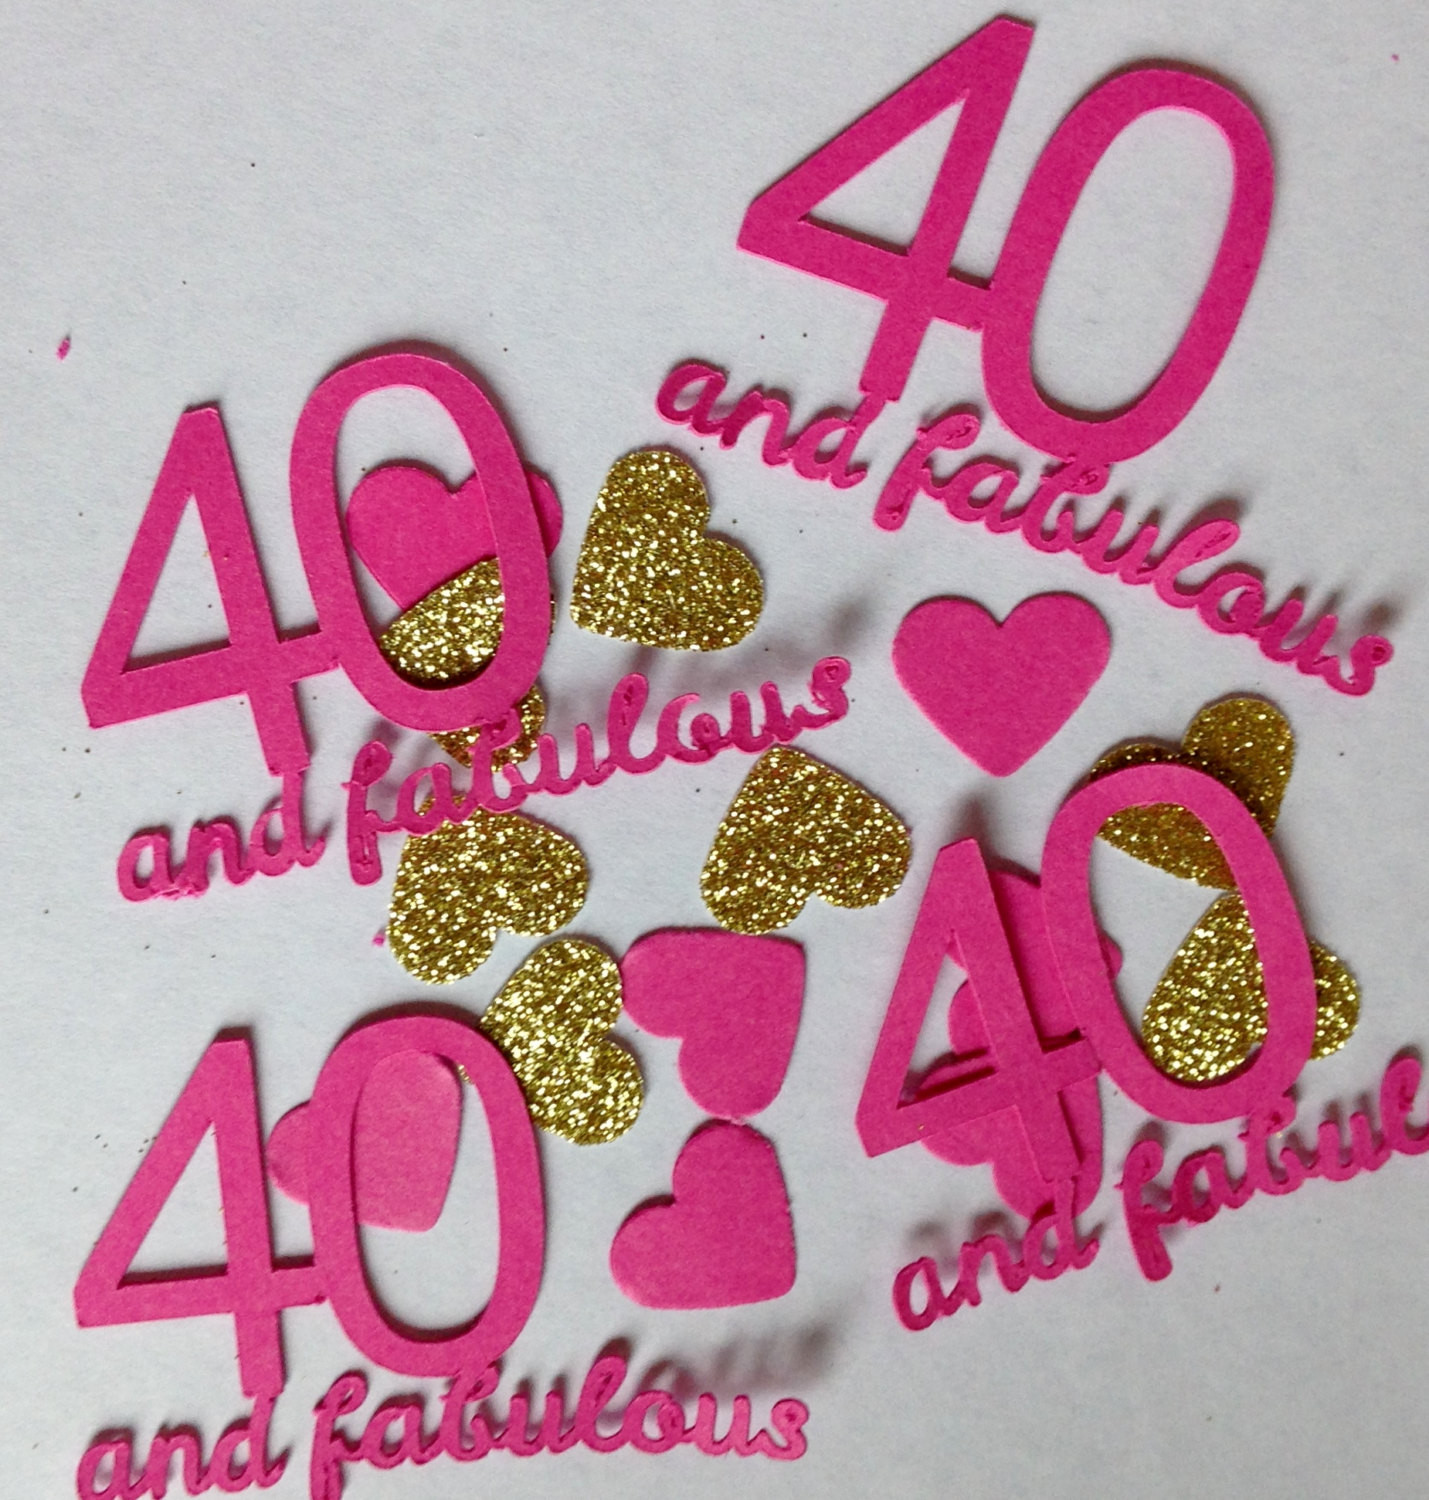 Best ideas about 40 Birthday Decorations . Save or Pin 40 & Fabulous Table Confetti 40th Birthday Party Now.